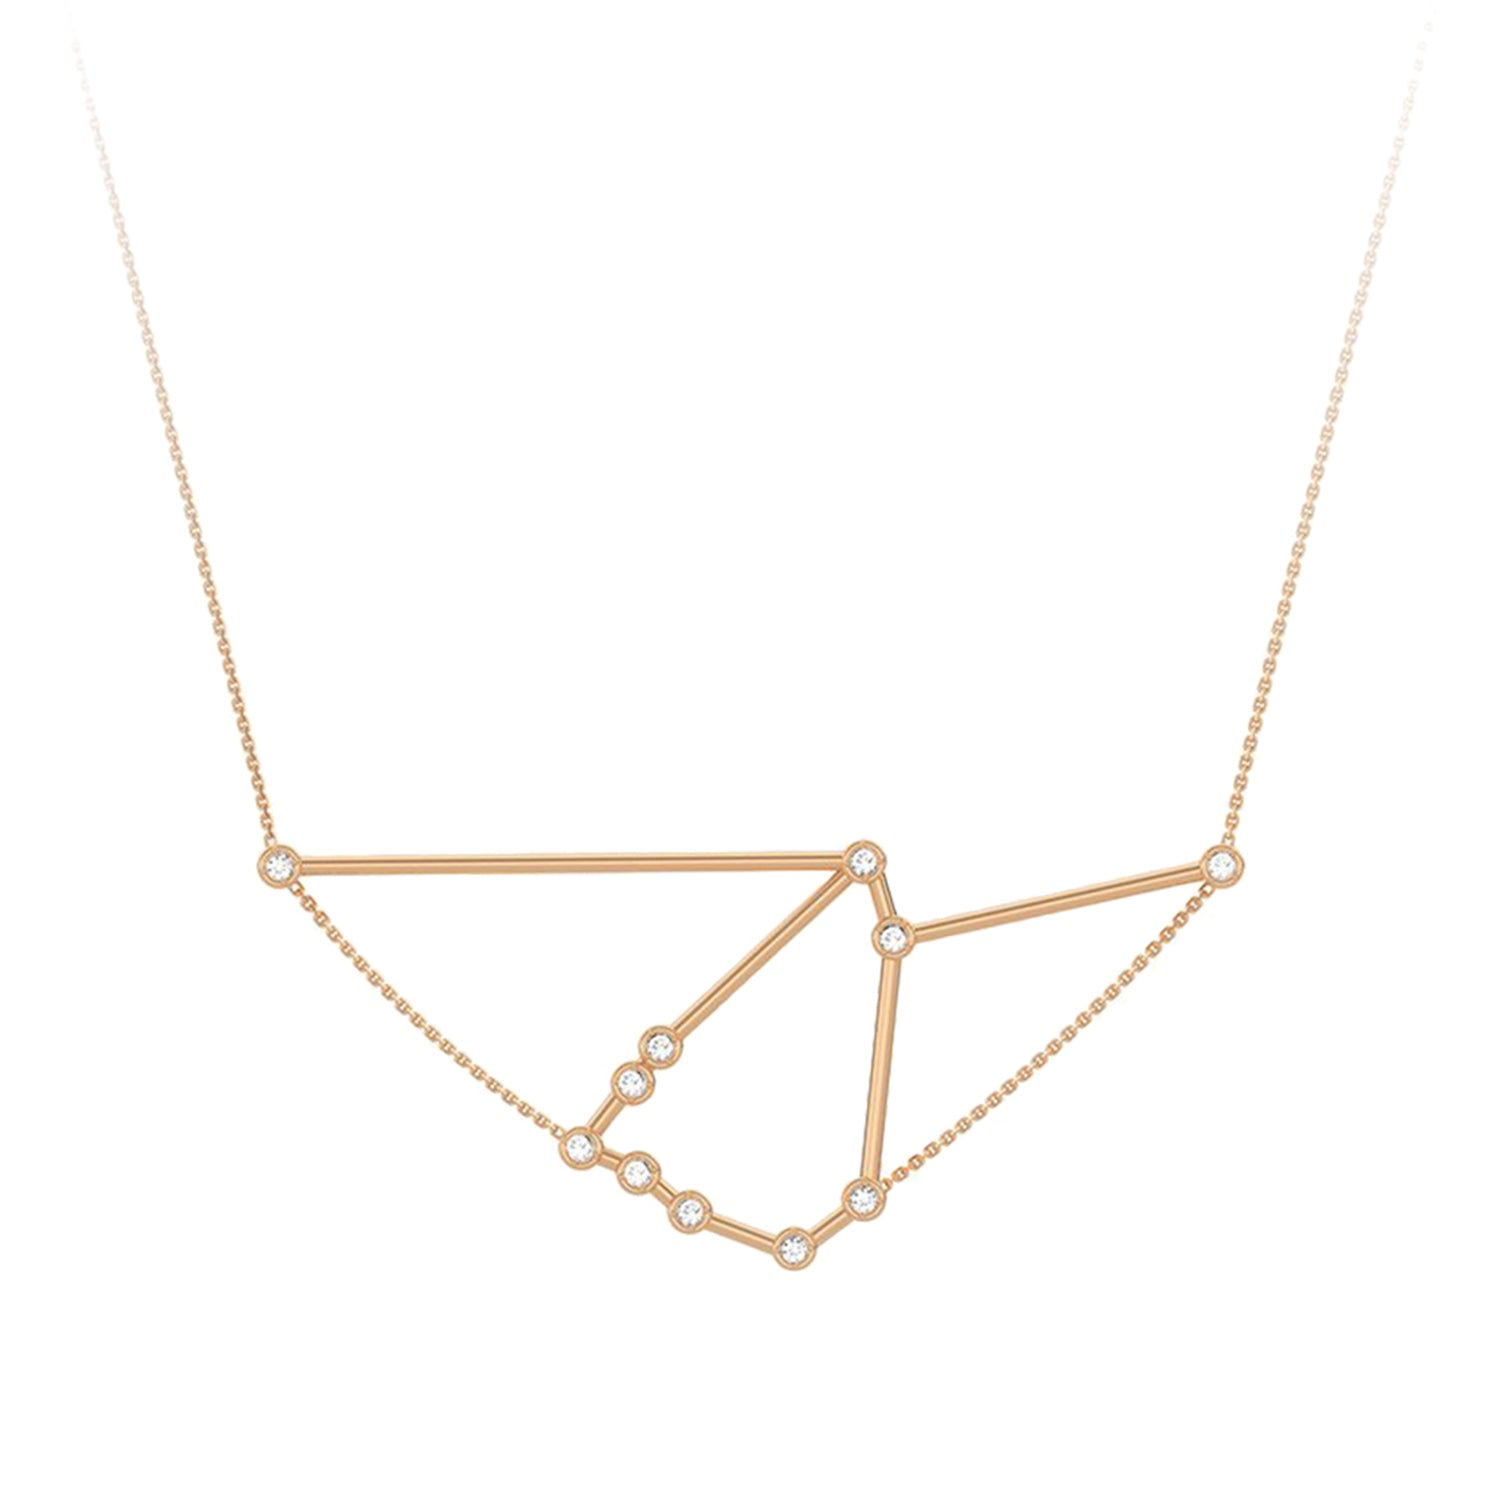 Gold & White Diamond Capricorn Constellation Necklace by Jessie Ve for Broken English Jewelry